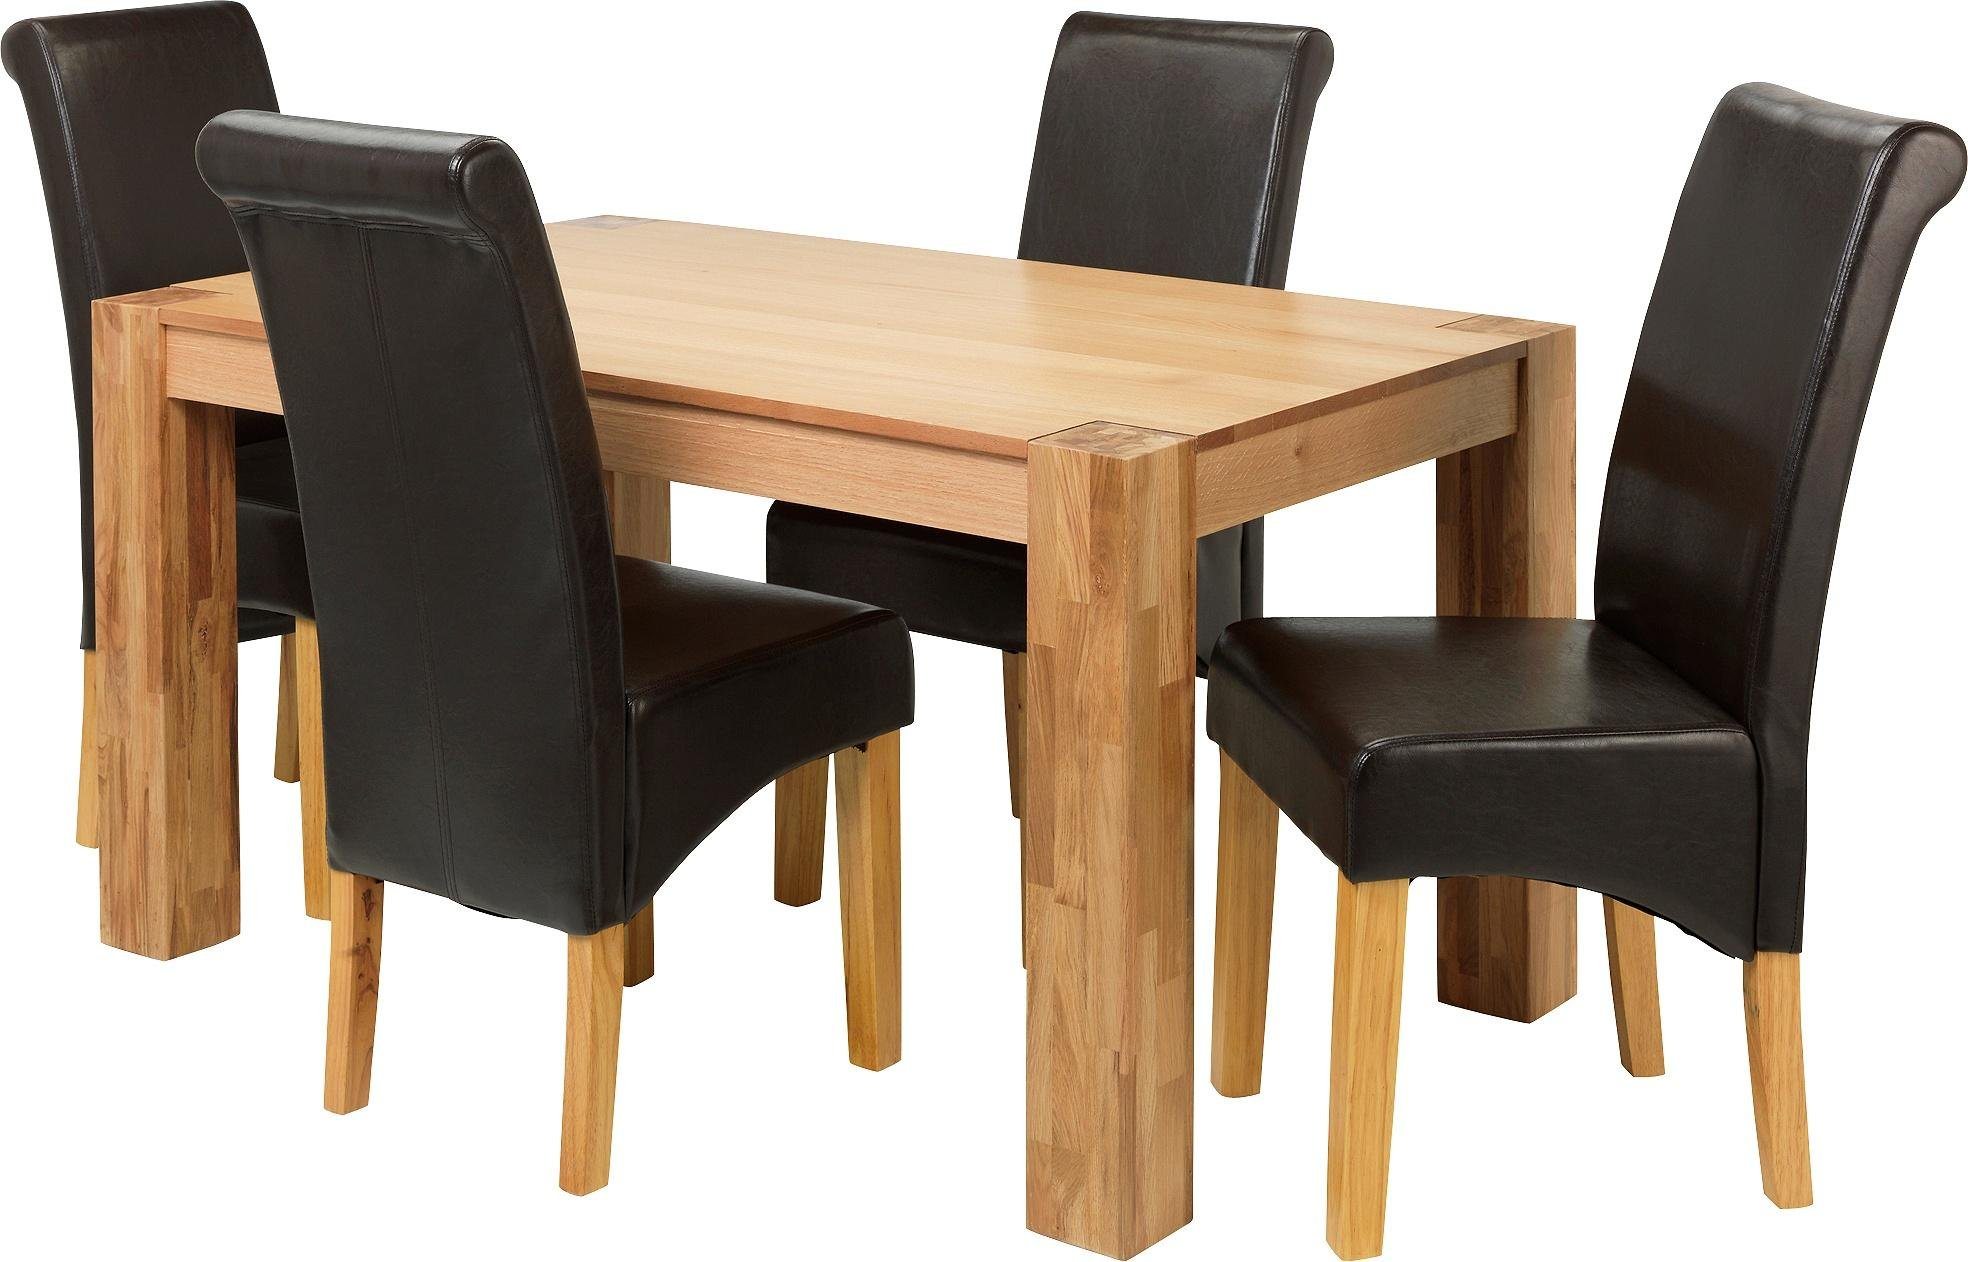 Buy Collection Marston 180cm Oak Table amp 4 Chairs  : 6036793RZ001AUC1382018Webampw570amph513 from www.argos.co.uk size 570 x 513 jpeg 29kB